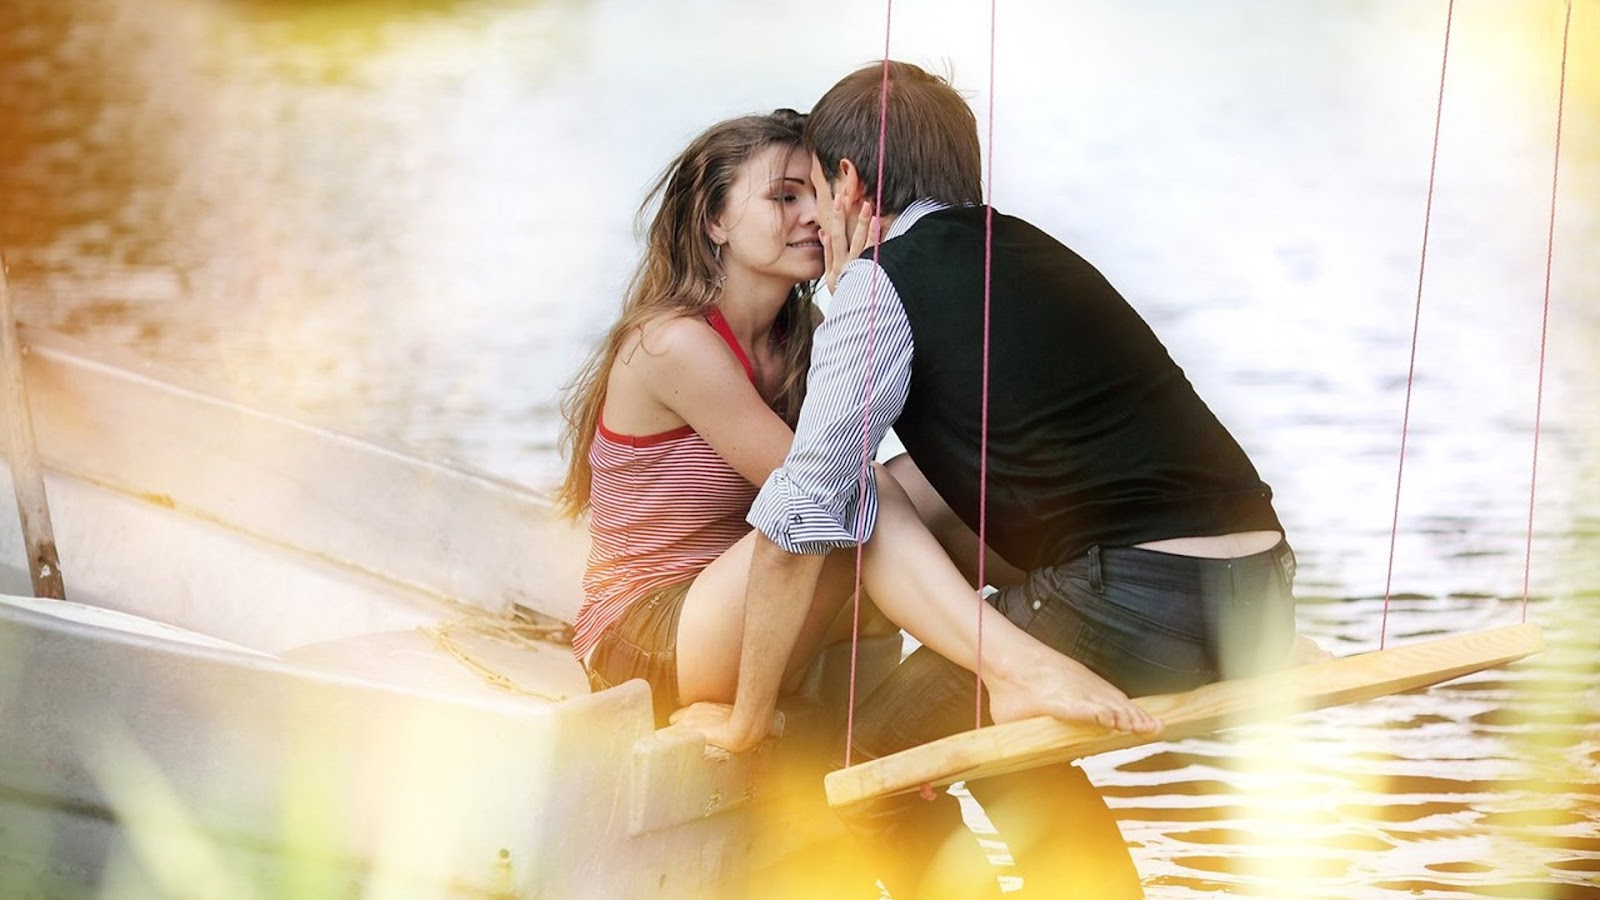 Hot Couple Kissing 1080P Hd Wallpapers  Images  Hd -9312